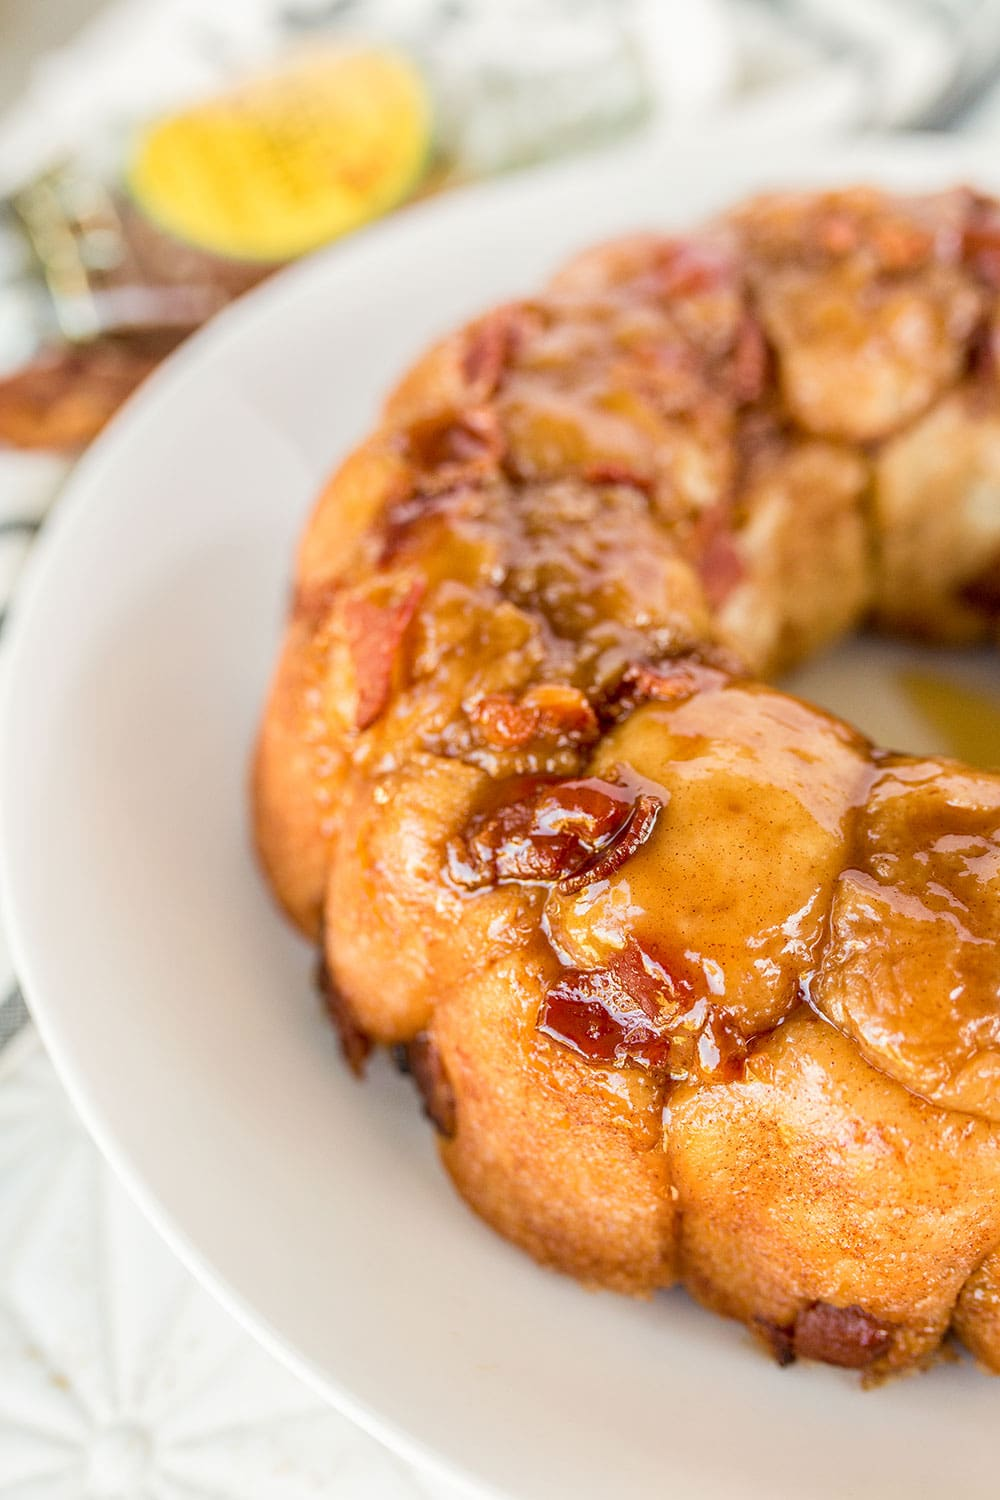 Insanely rich and gooey Maple Bacon Monkey Bread is loaded with sweet cinnamon, maple syrup, and tons of crisp bacon for the ultimate decadent treat.